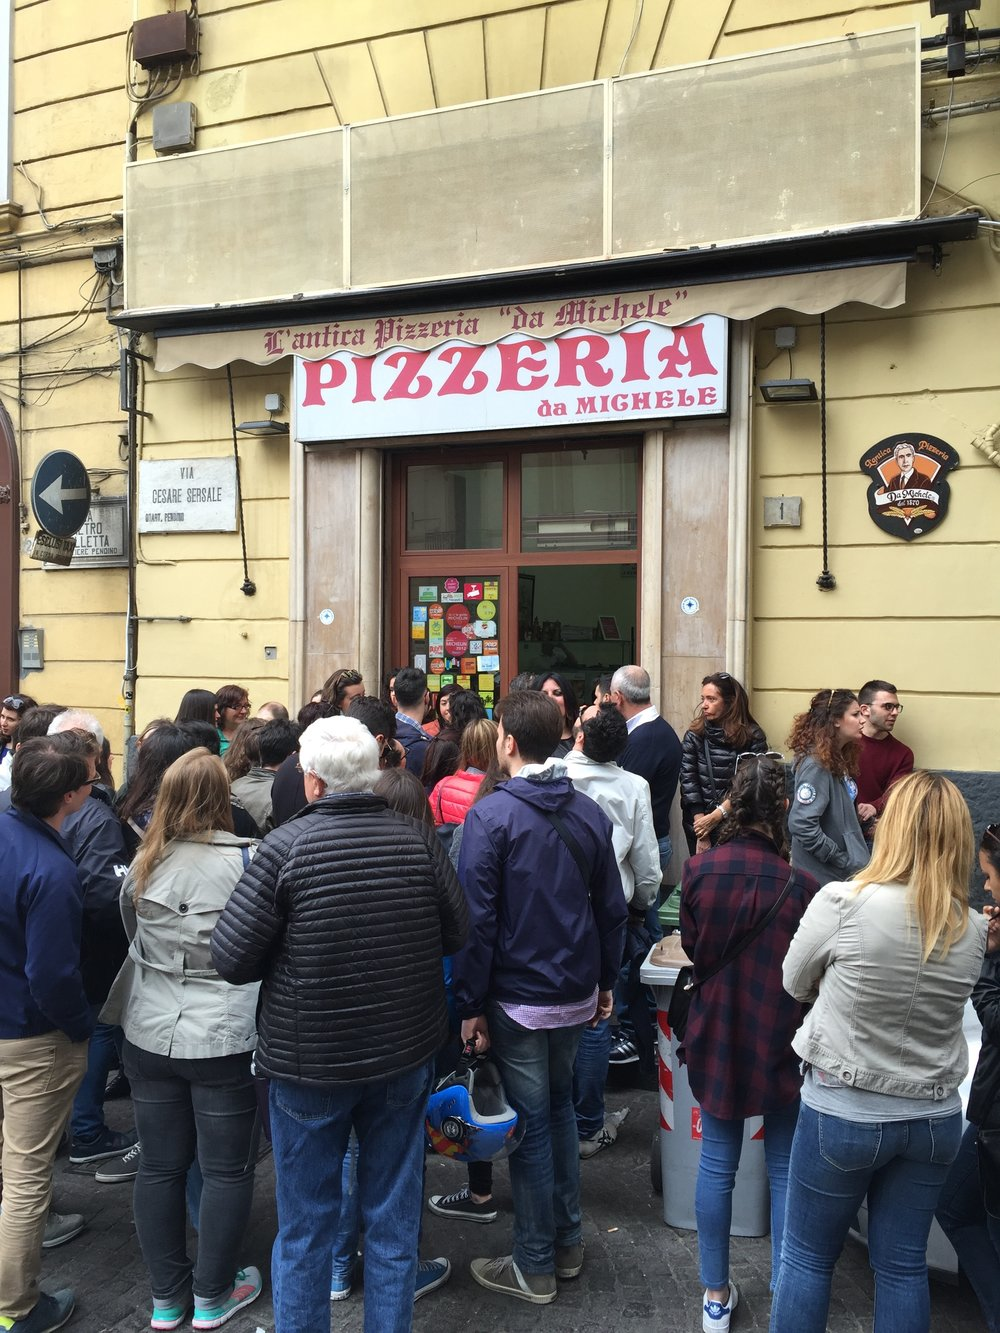 Da Michele, the holy grail of pizzerias, and the crowd waiting for their number to be called.